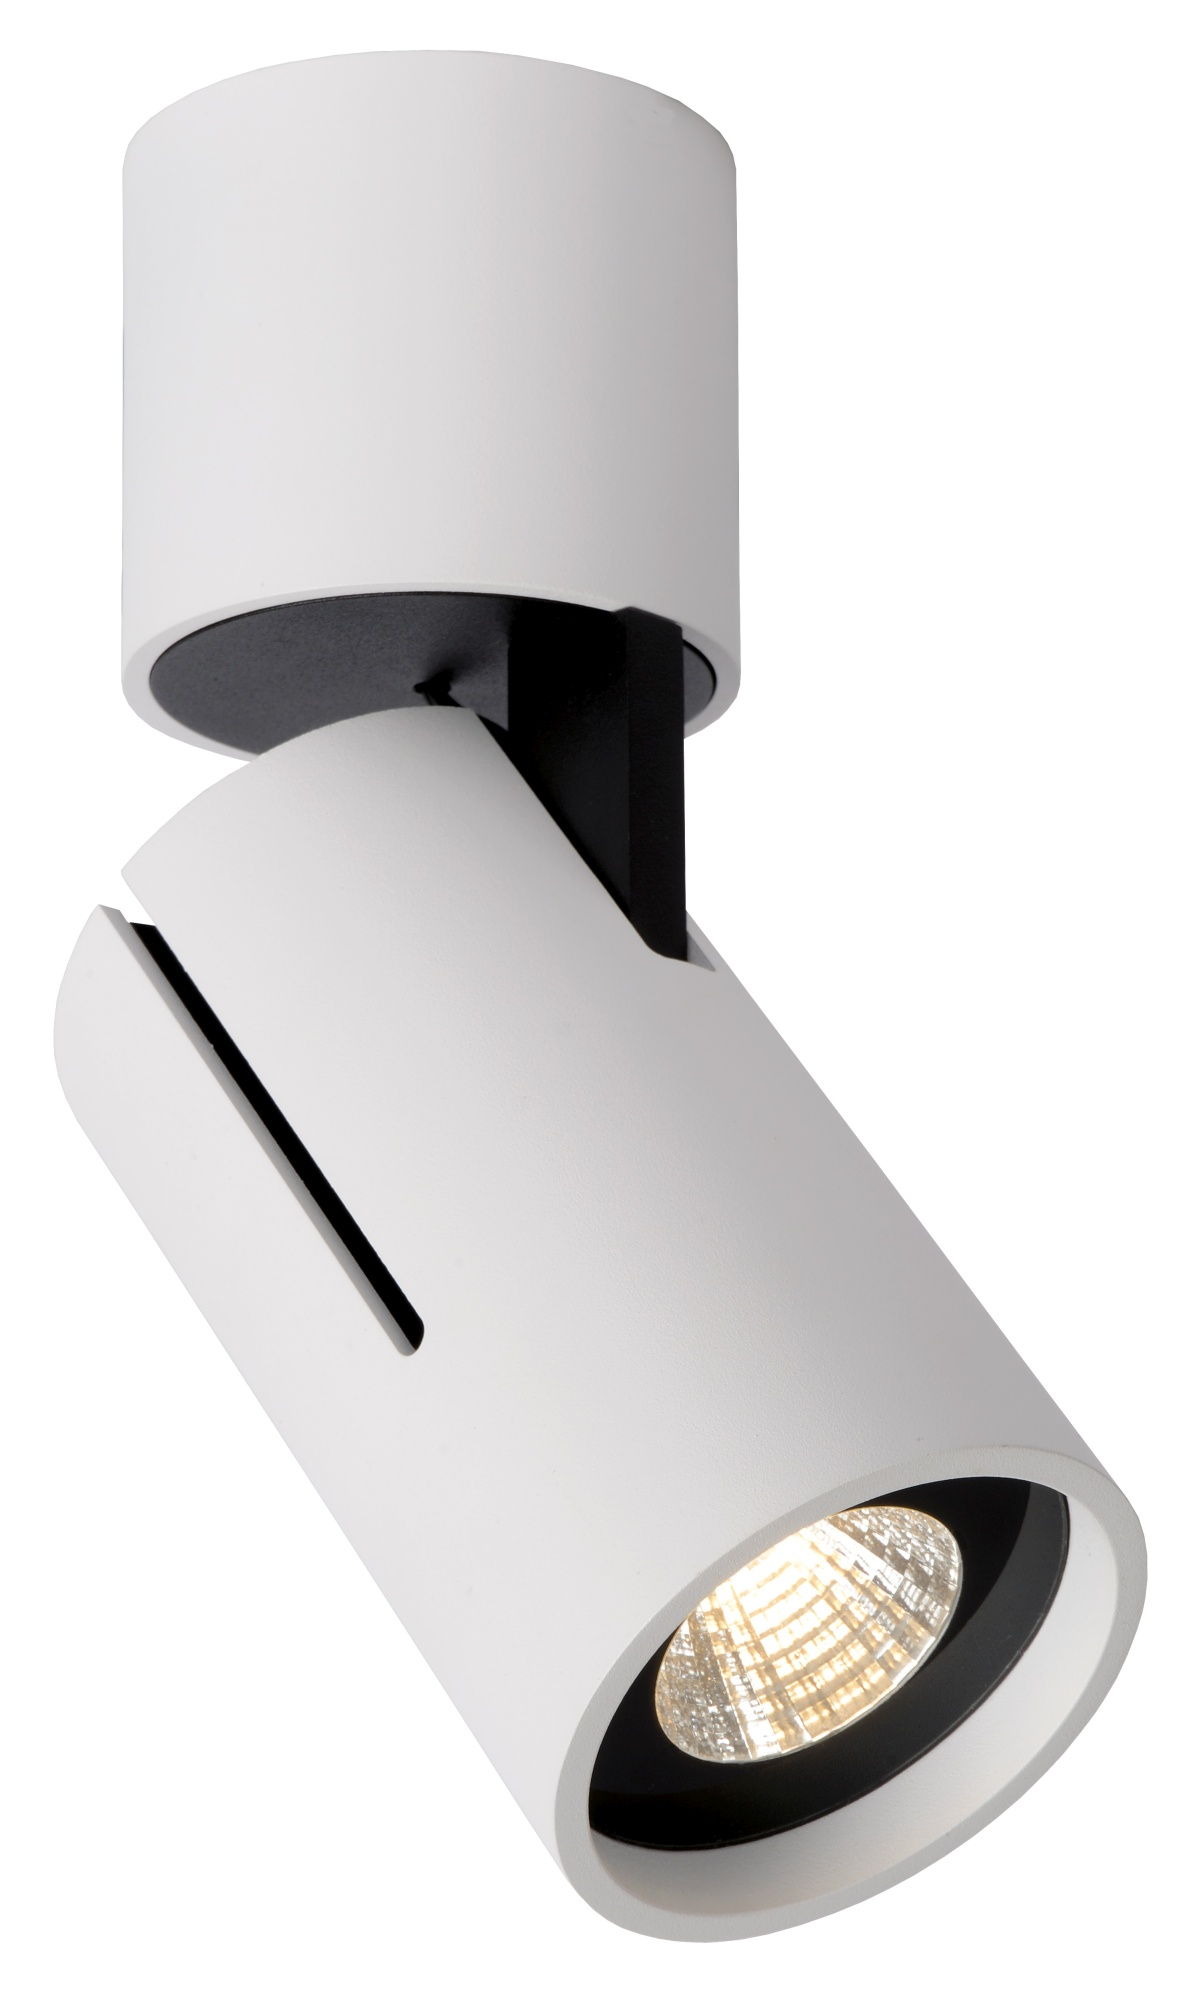 Led Plafondplaat Lucide Plafondspot Landa4 Dimbare Led Wit In De Aanbieding